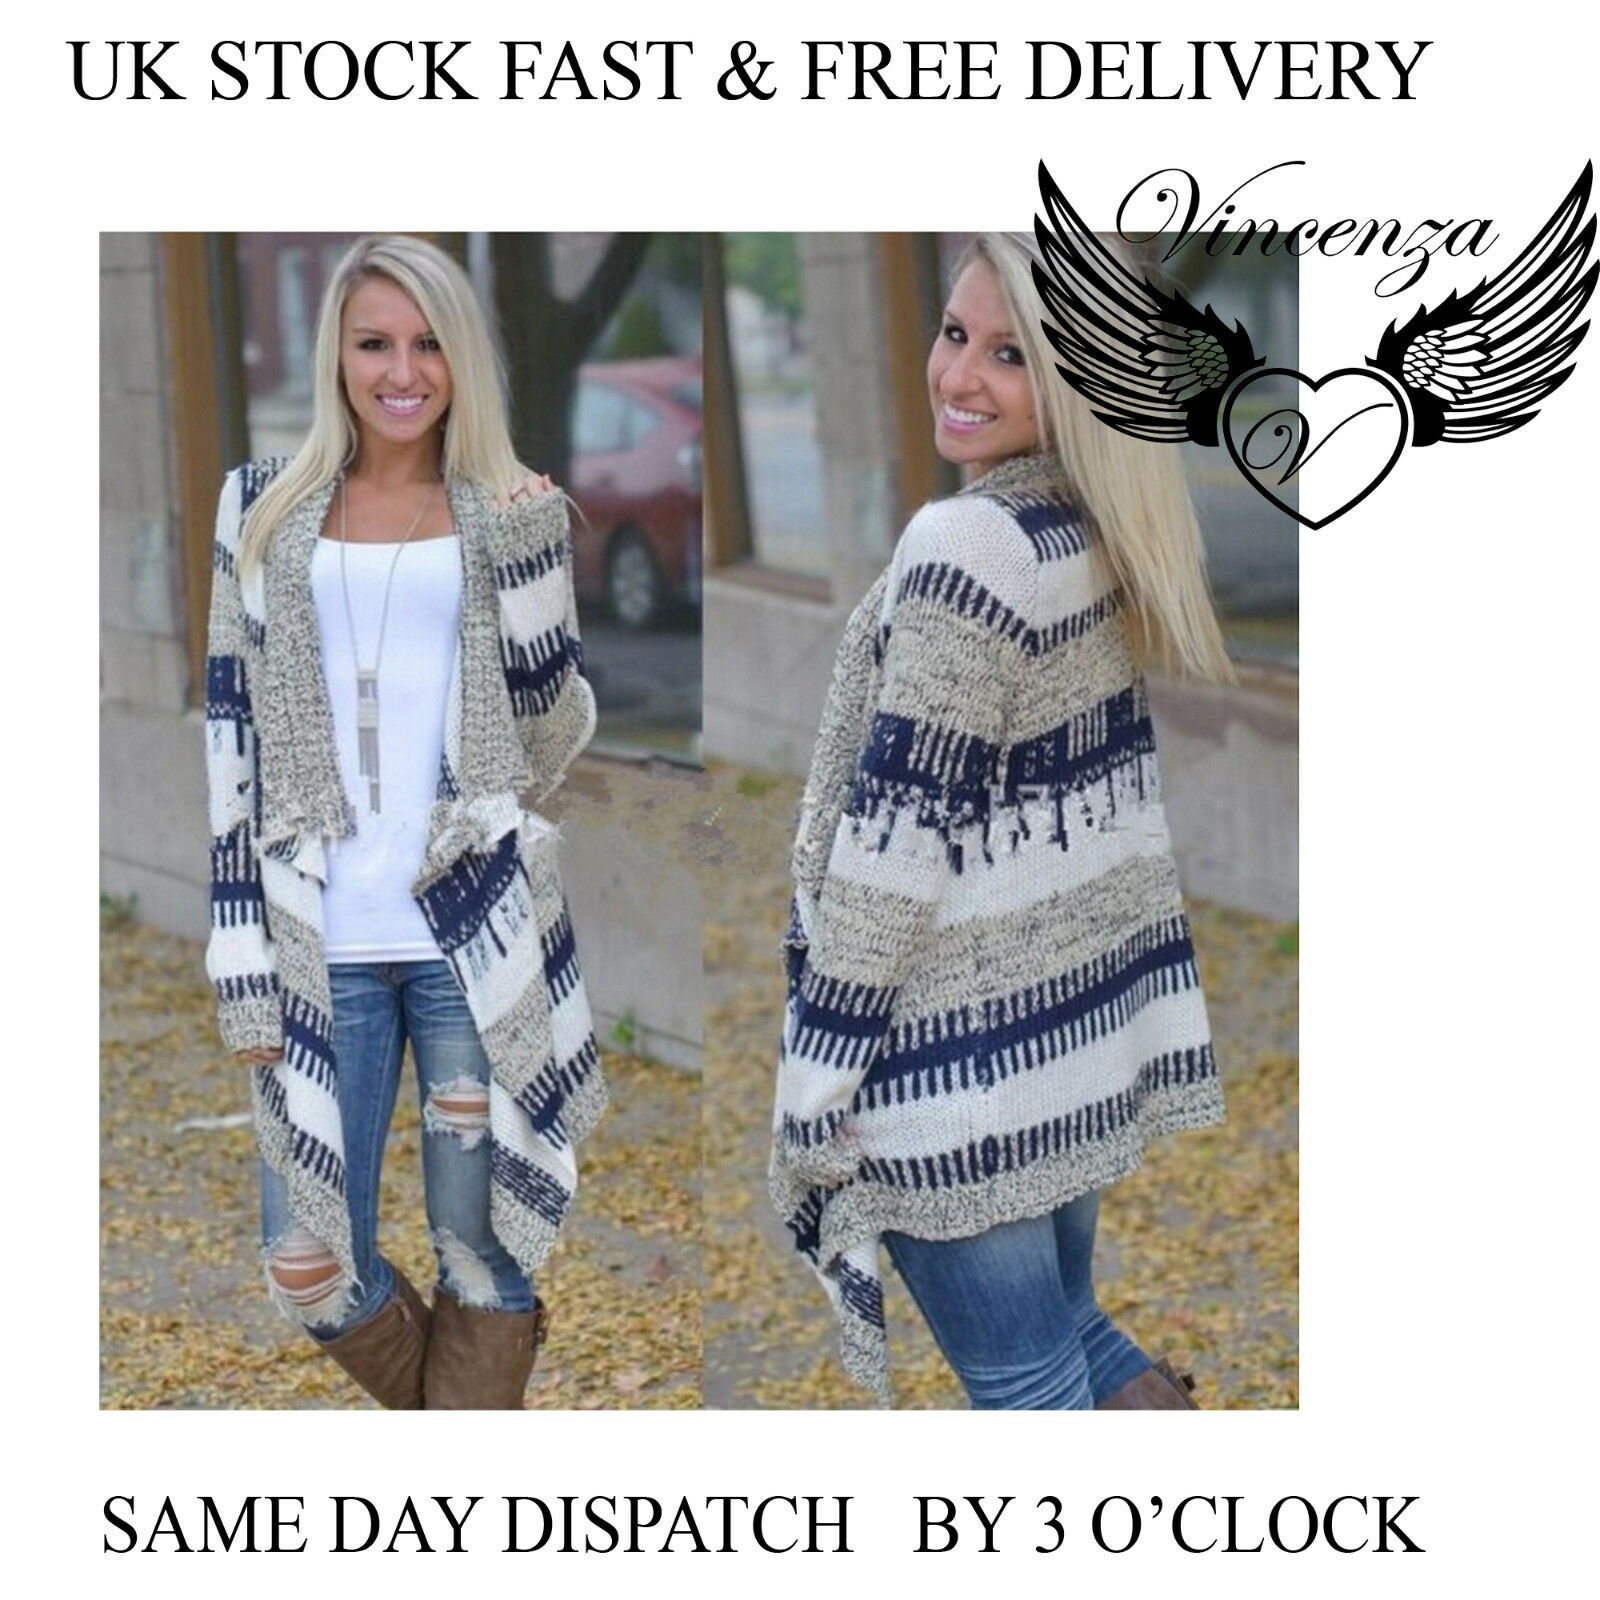 e6cfae09f48 Details about WOMENS LADIES OPEN LONG SLEEVE JUMPER SHAWL SWEATER CARDIGAN  TOP UK VINCENZA